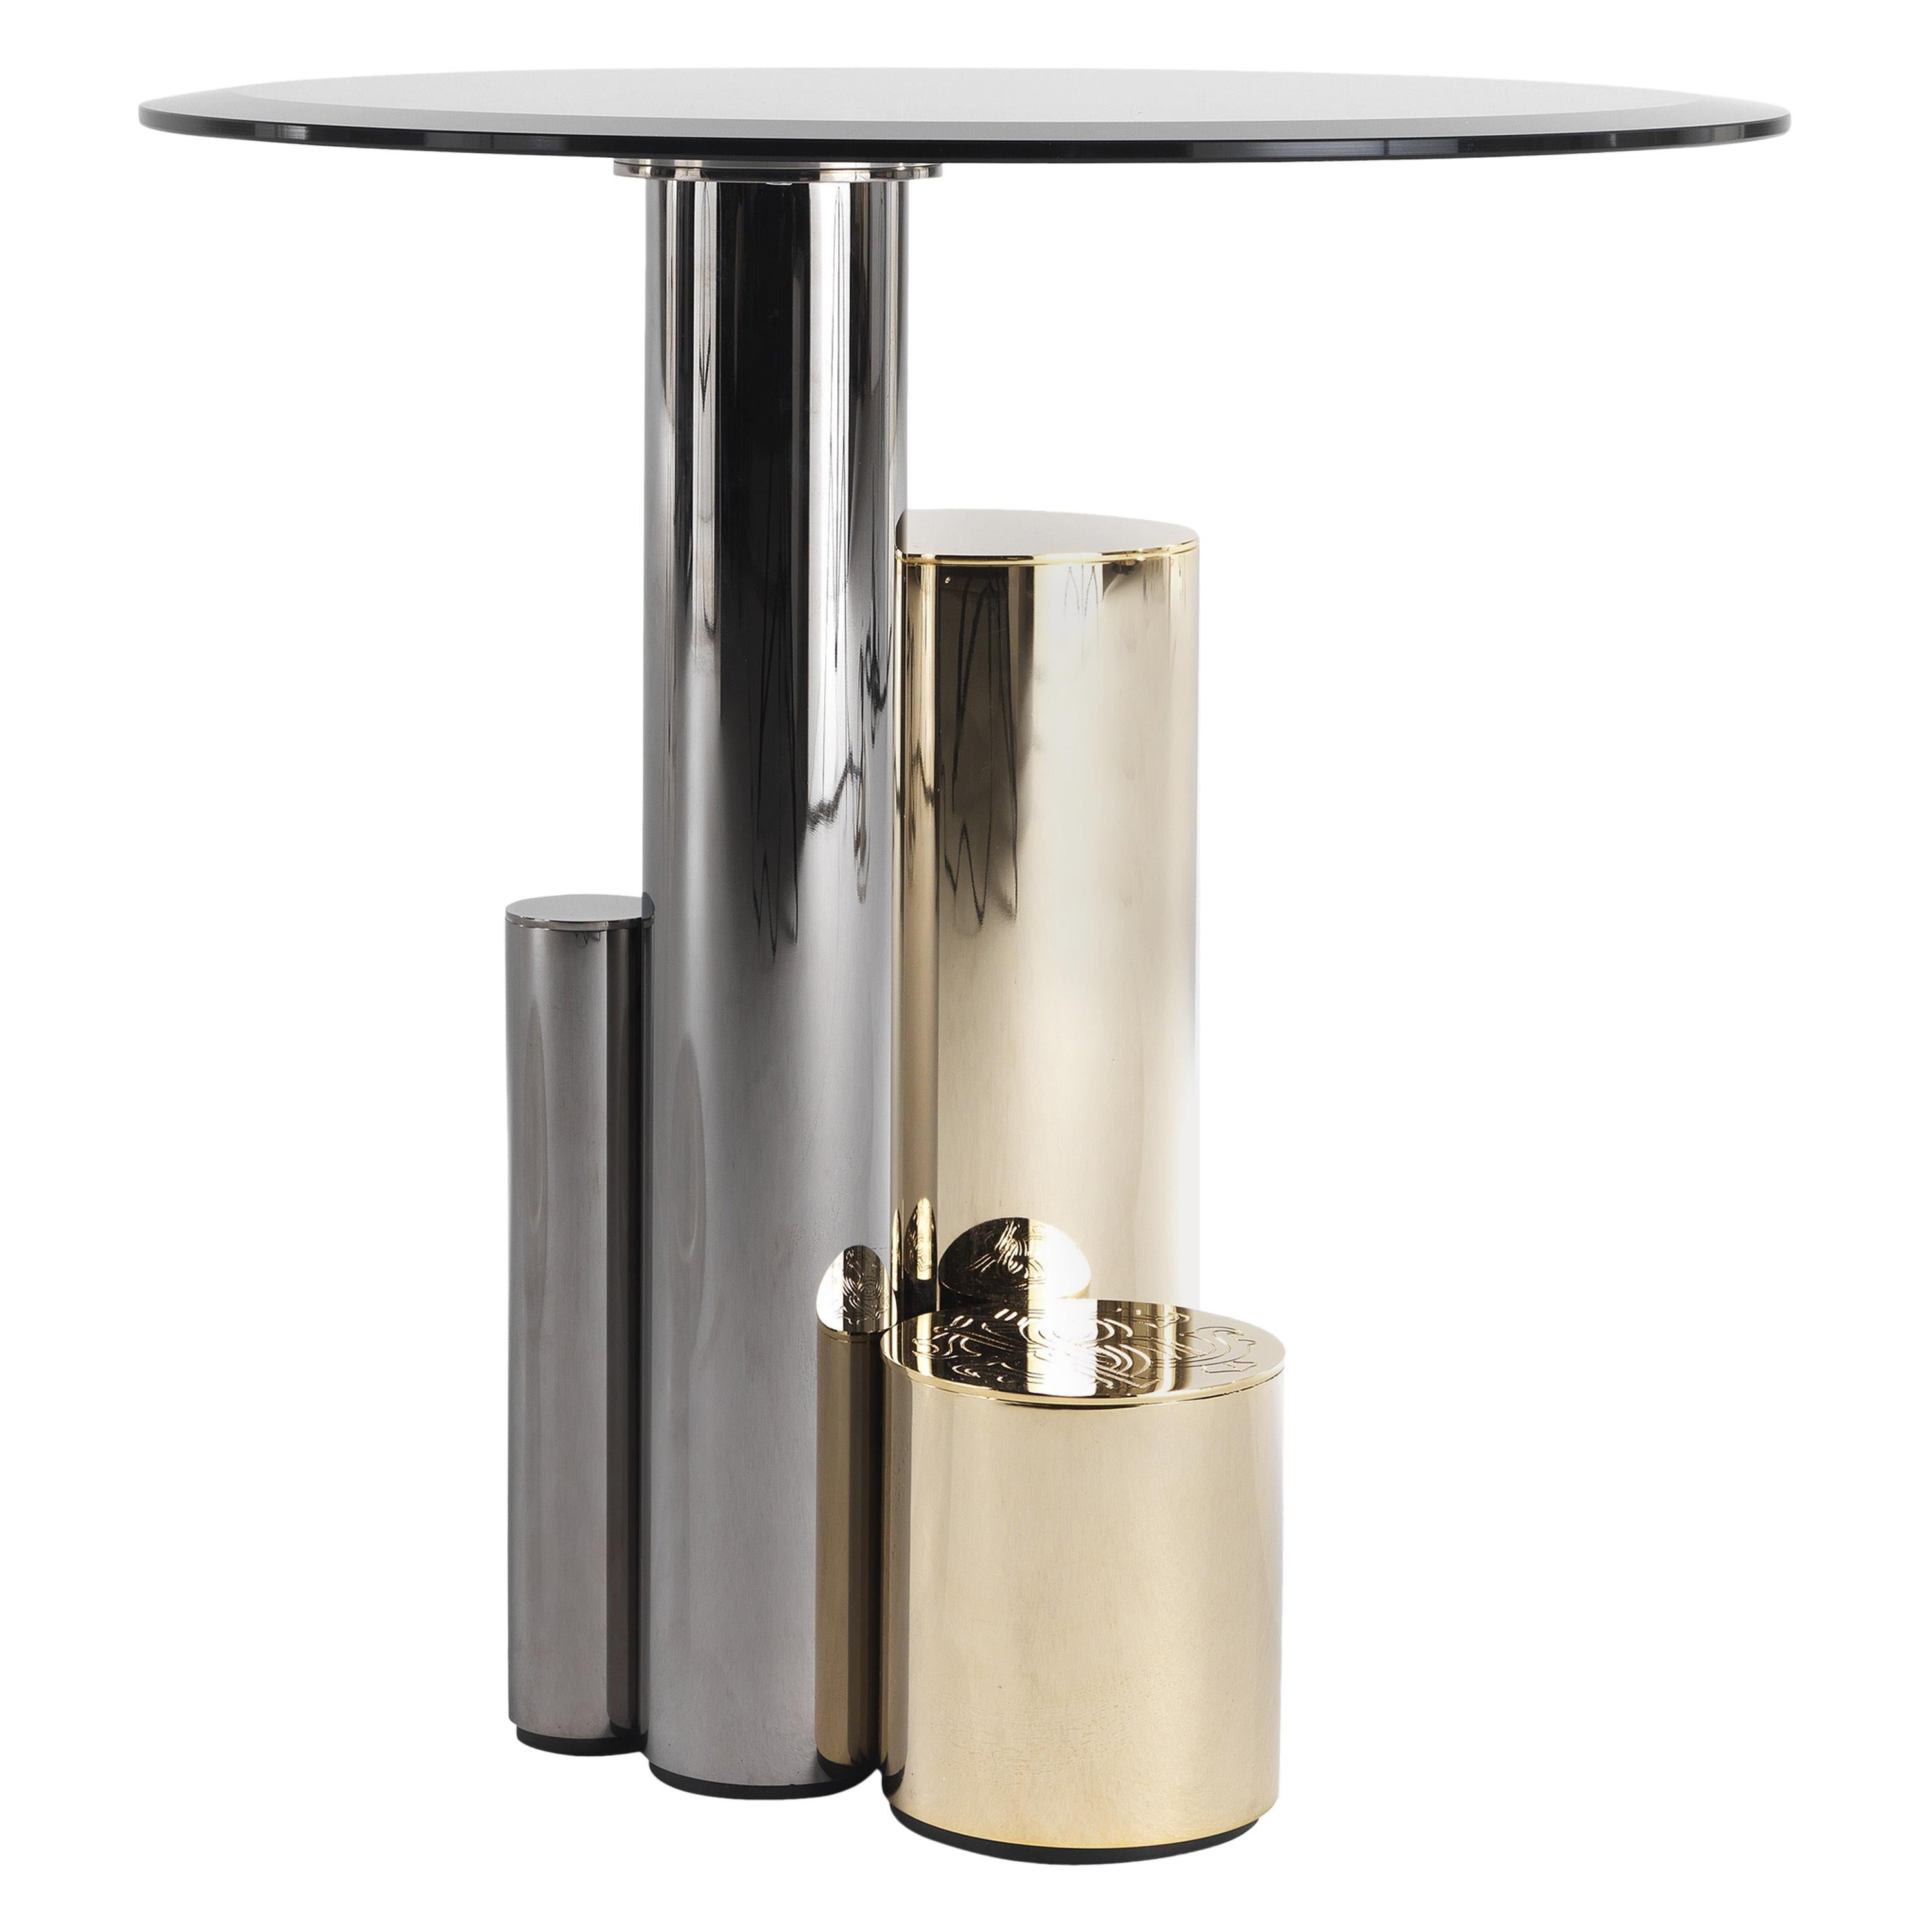 Antigua Small Side Table with Metal Base by Roberto Cavalli Home Interiors